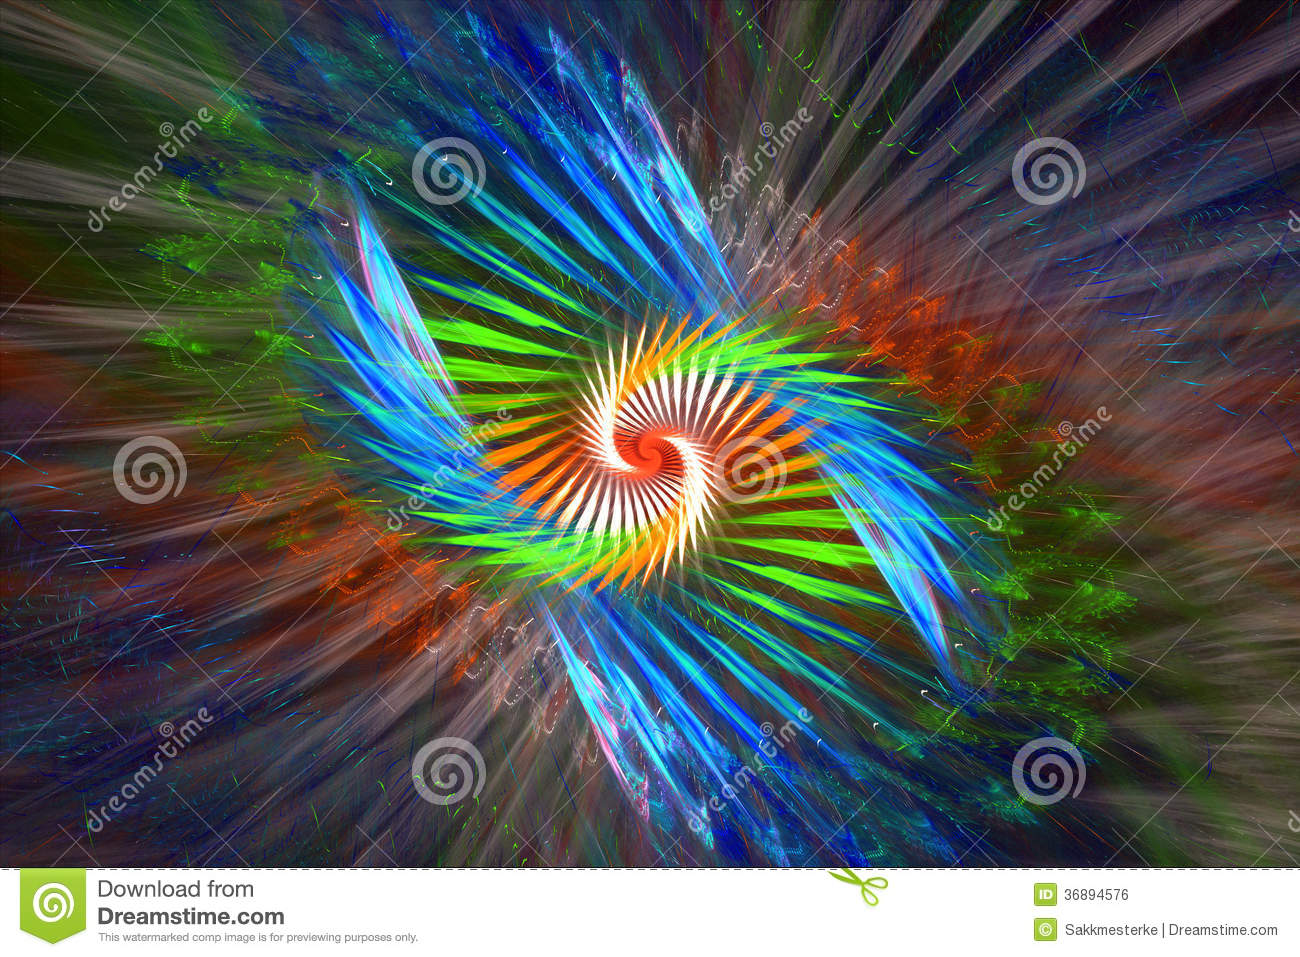 Abstract colorful background, golden ratio